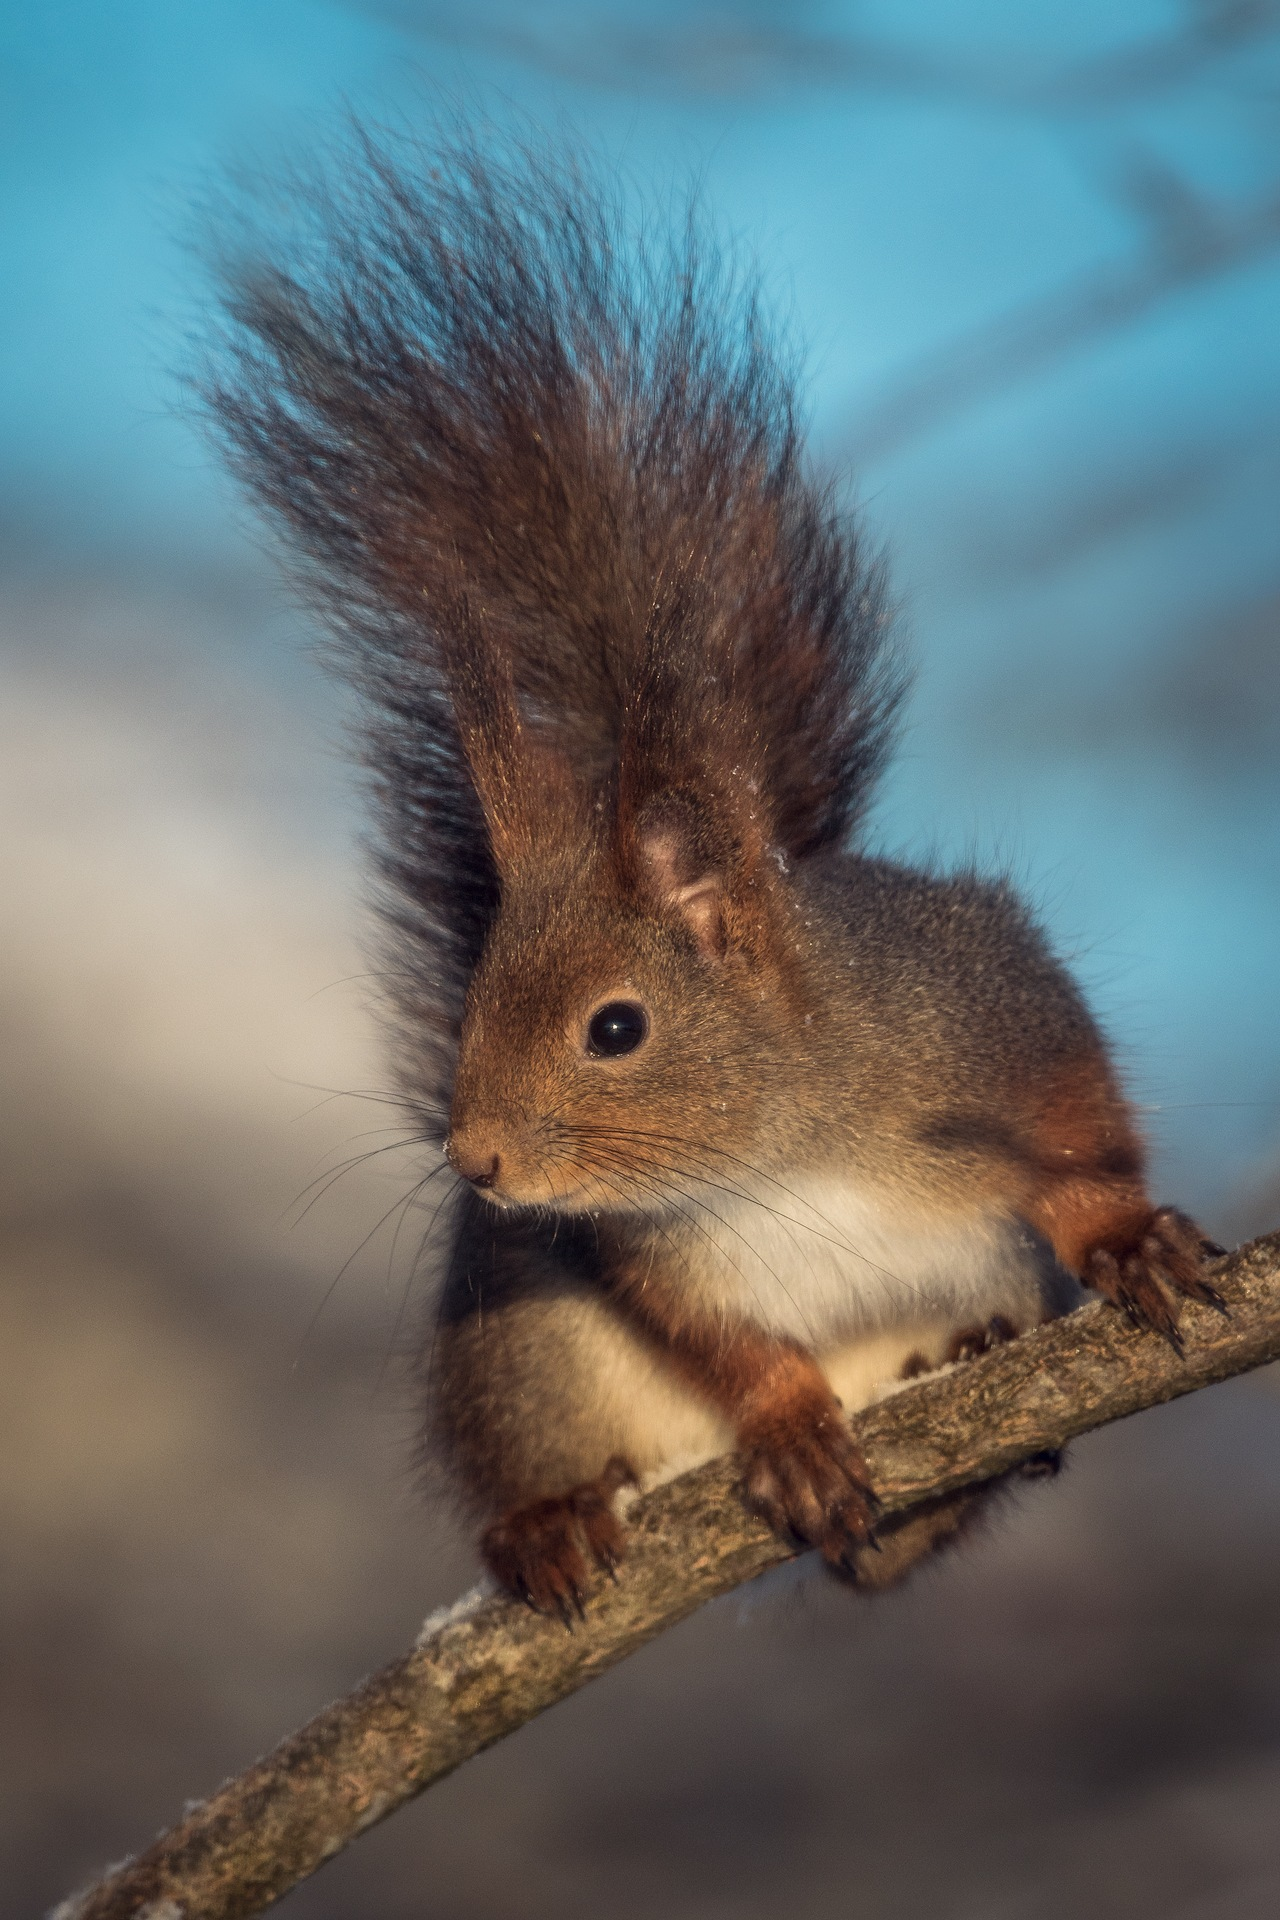 Squirrel by Johnny